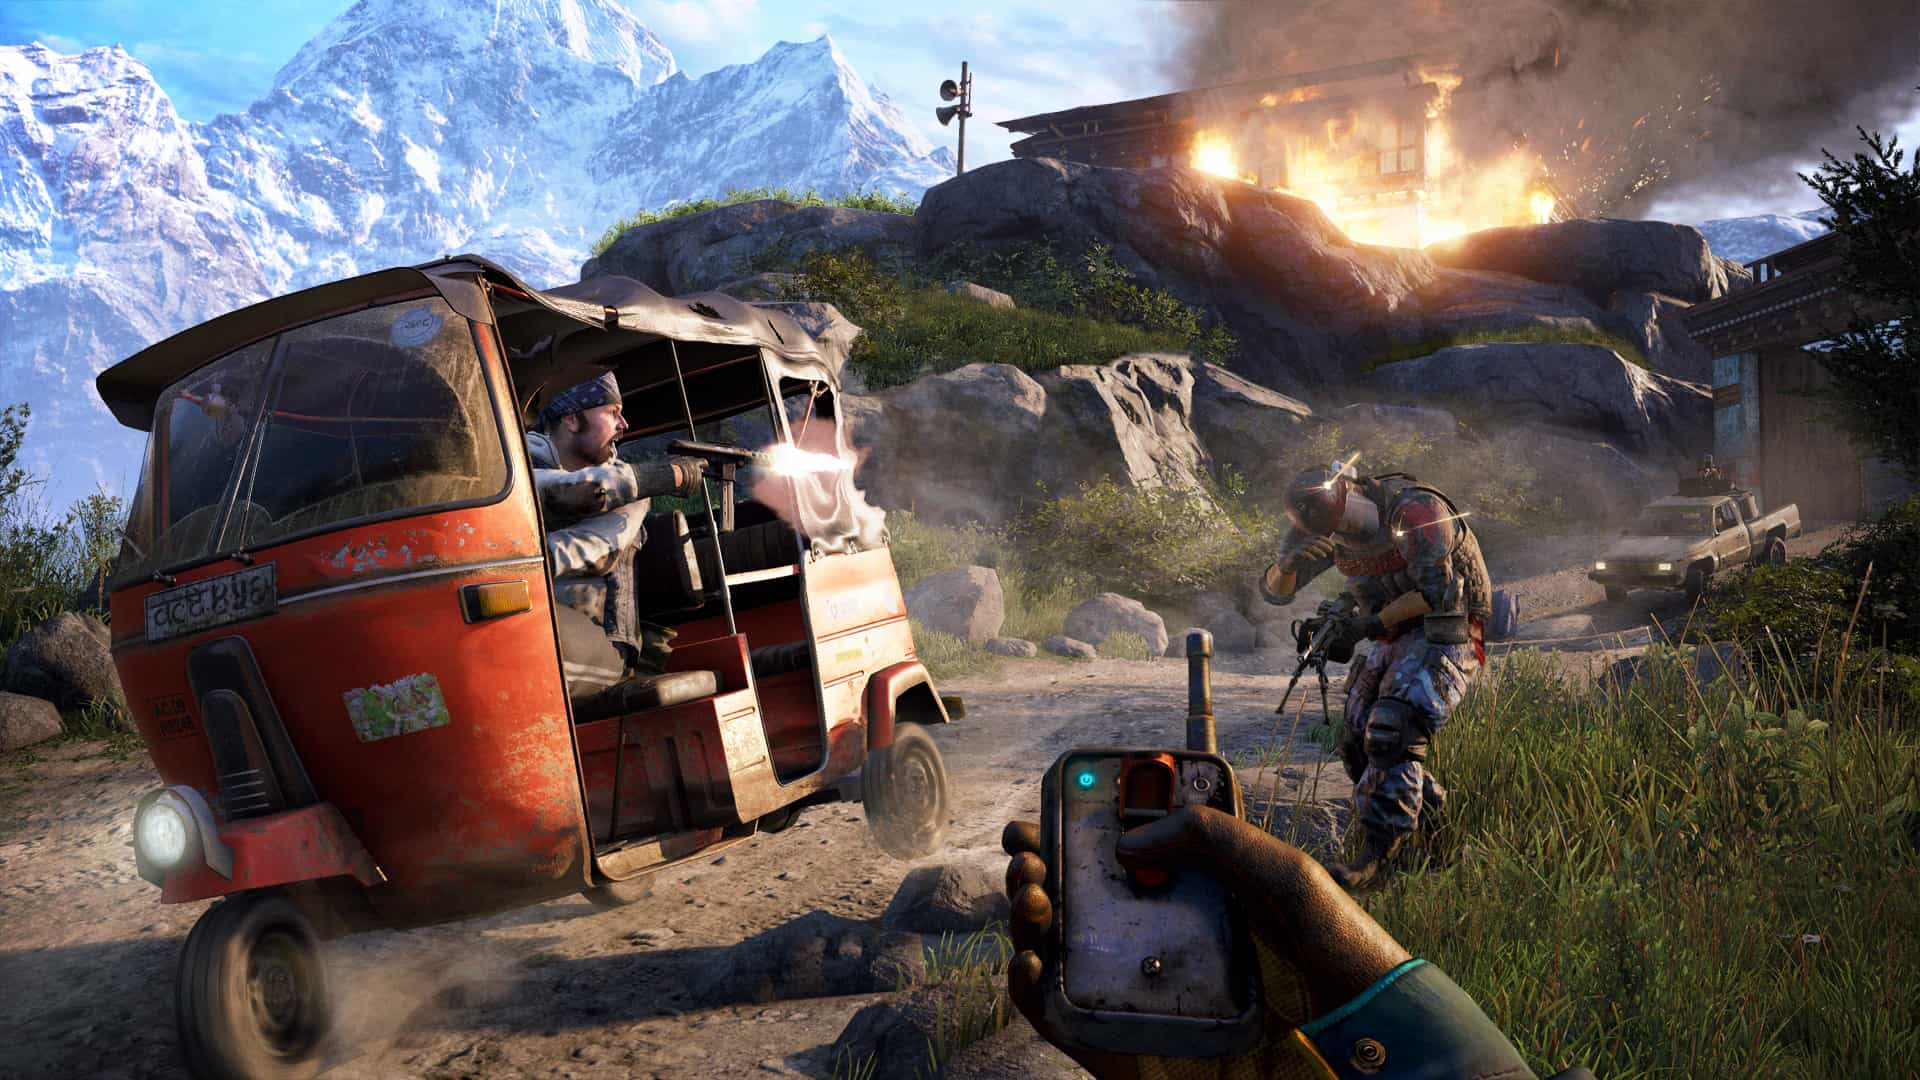 gameplay screen of far cry 4